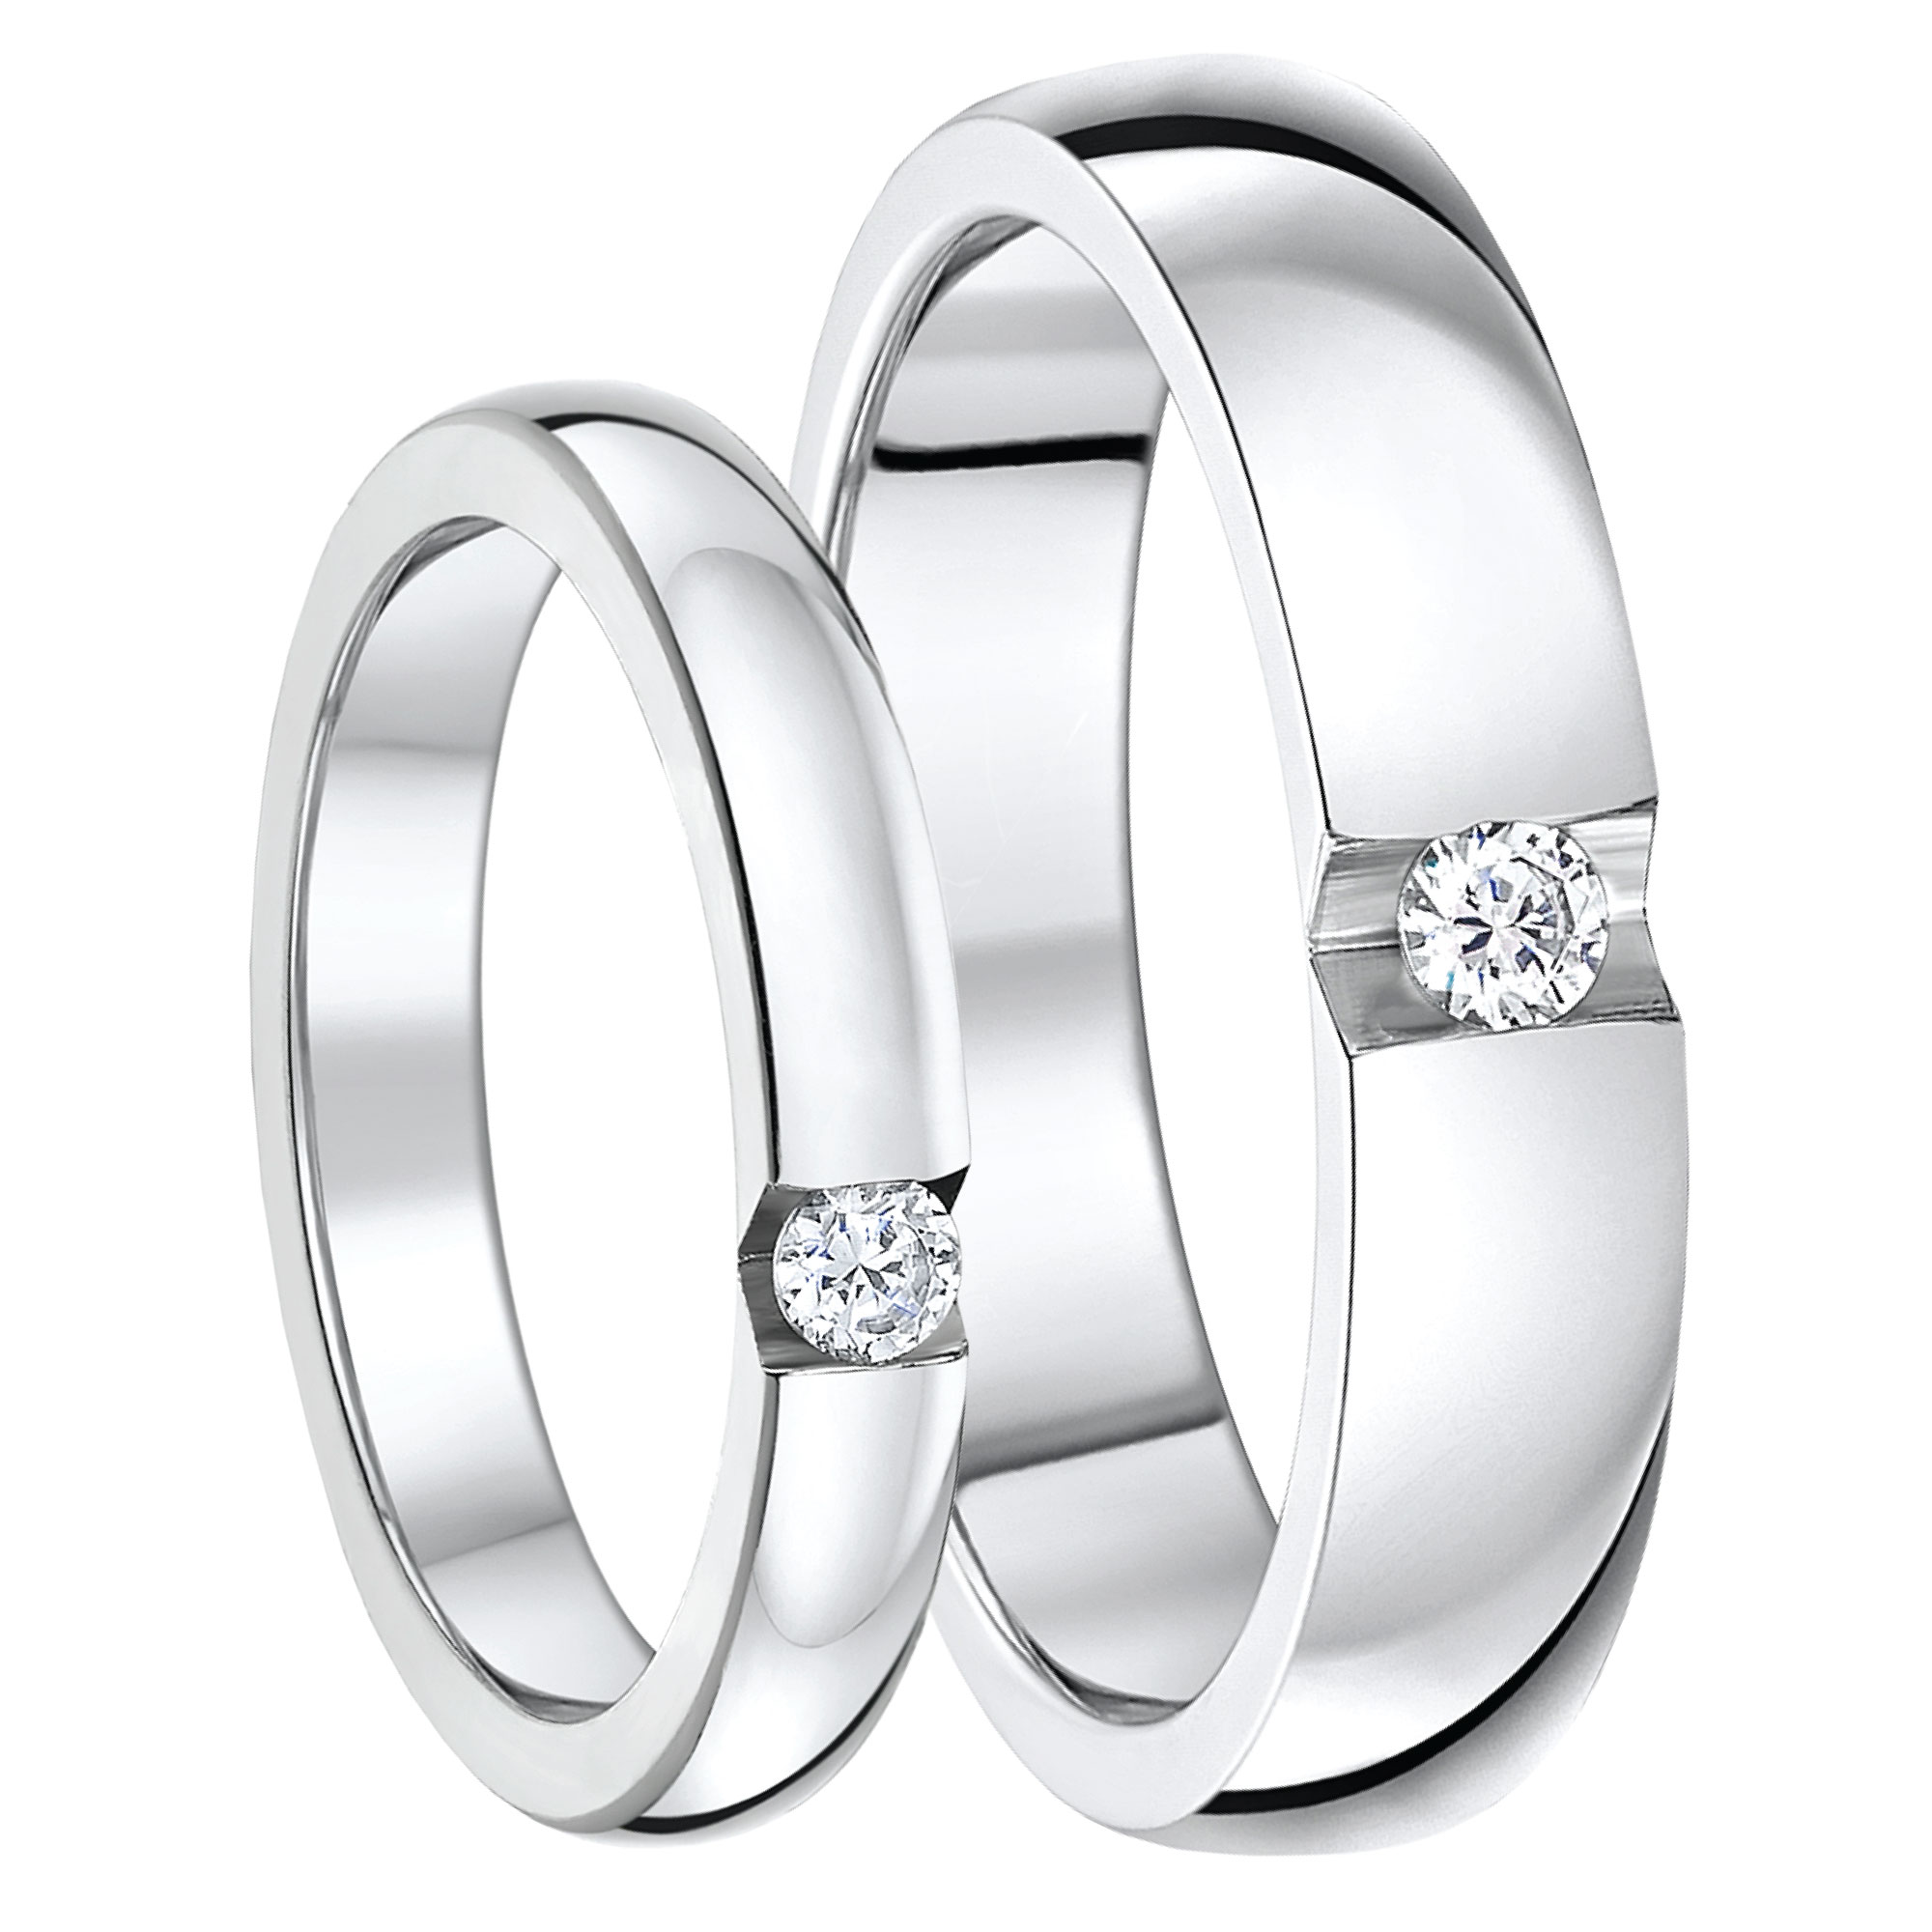 diamond wedding value rings co etiquette of awesome resale with s for inspirational groom parents sell tififi